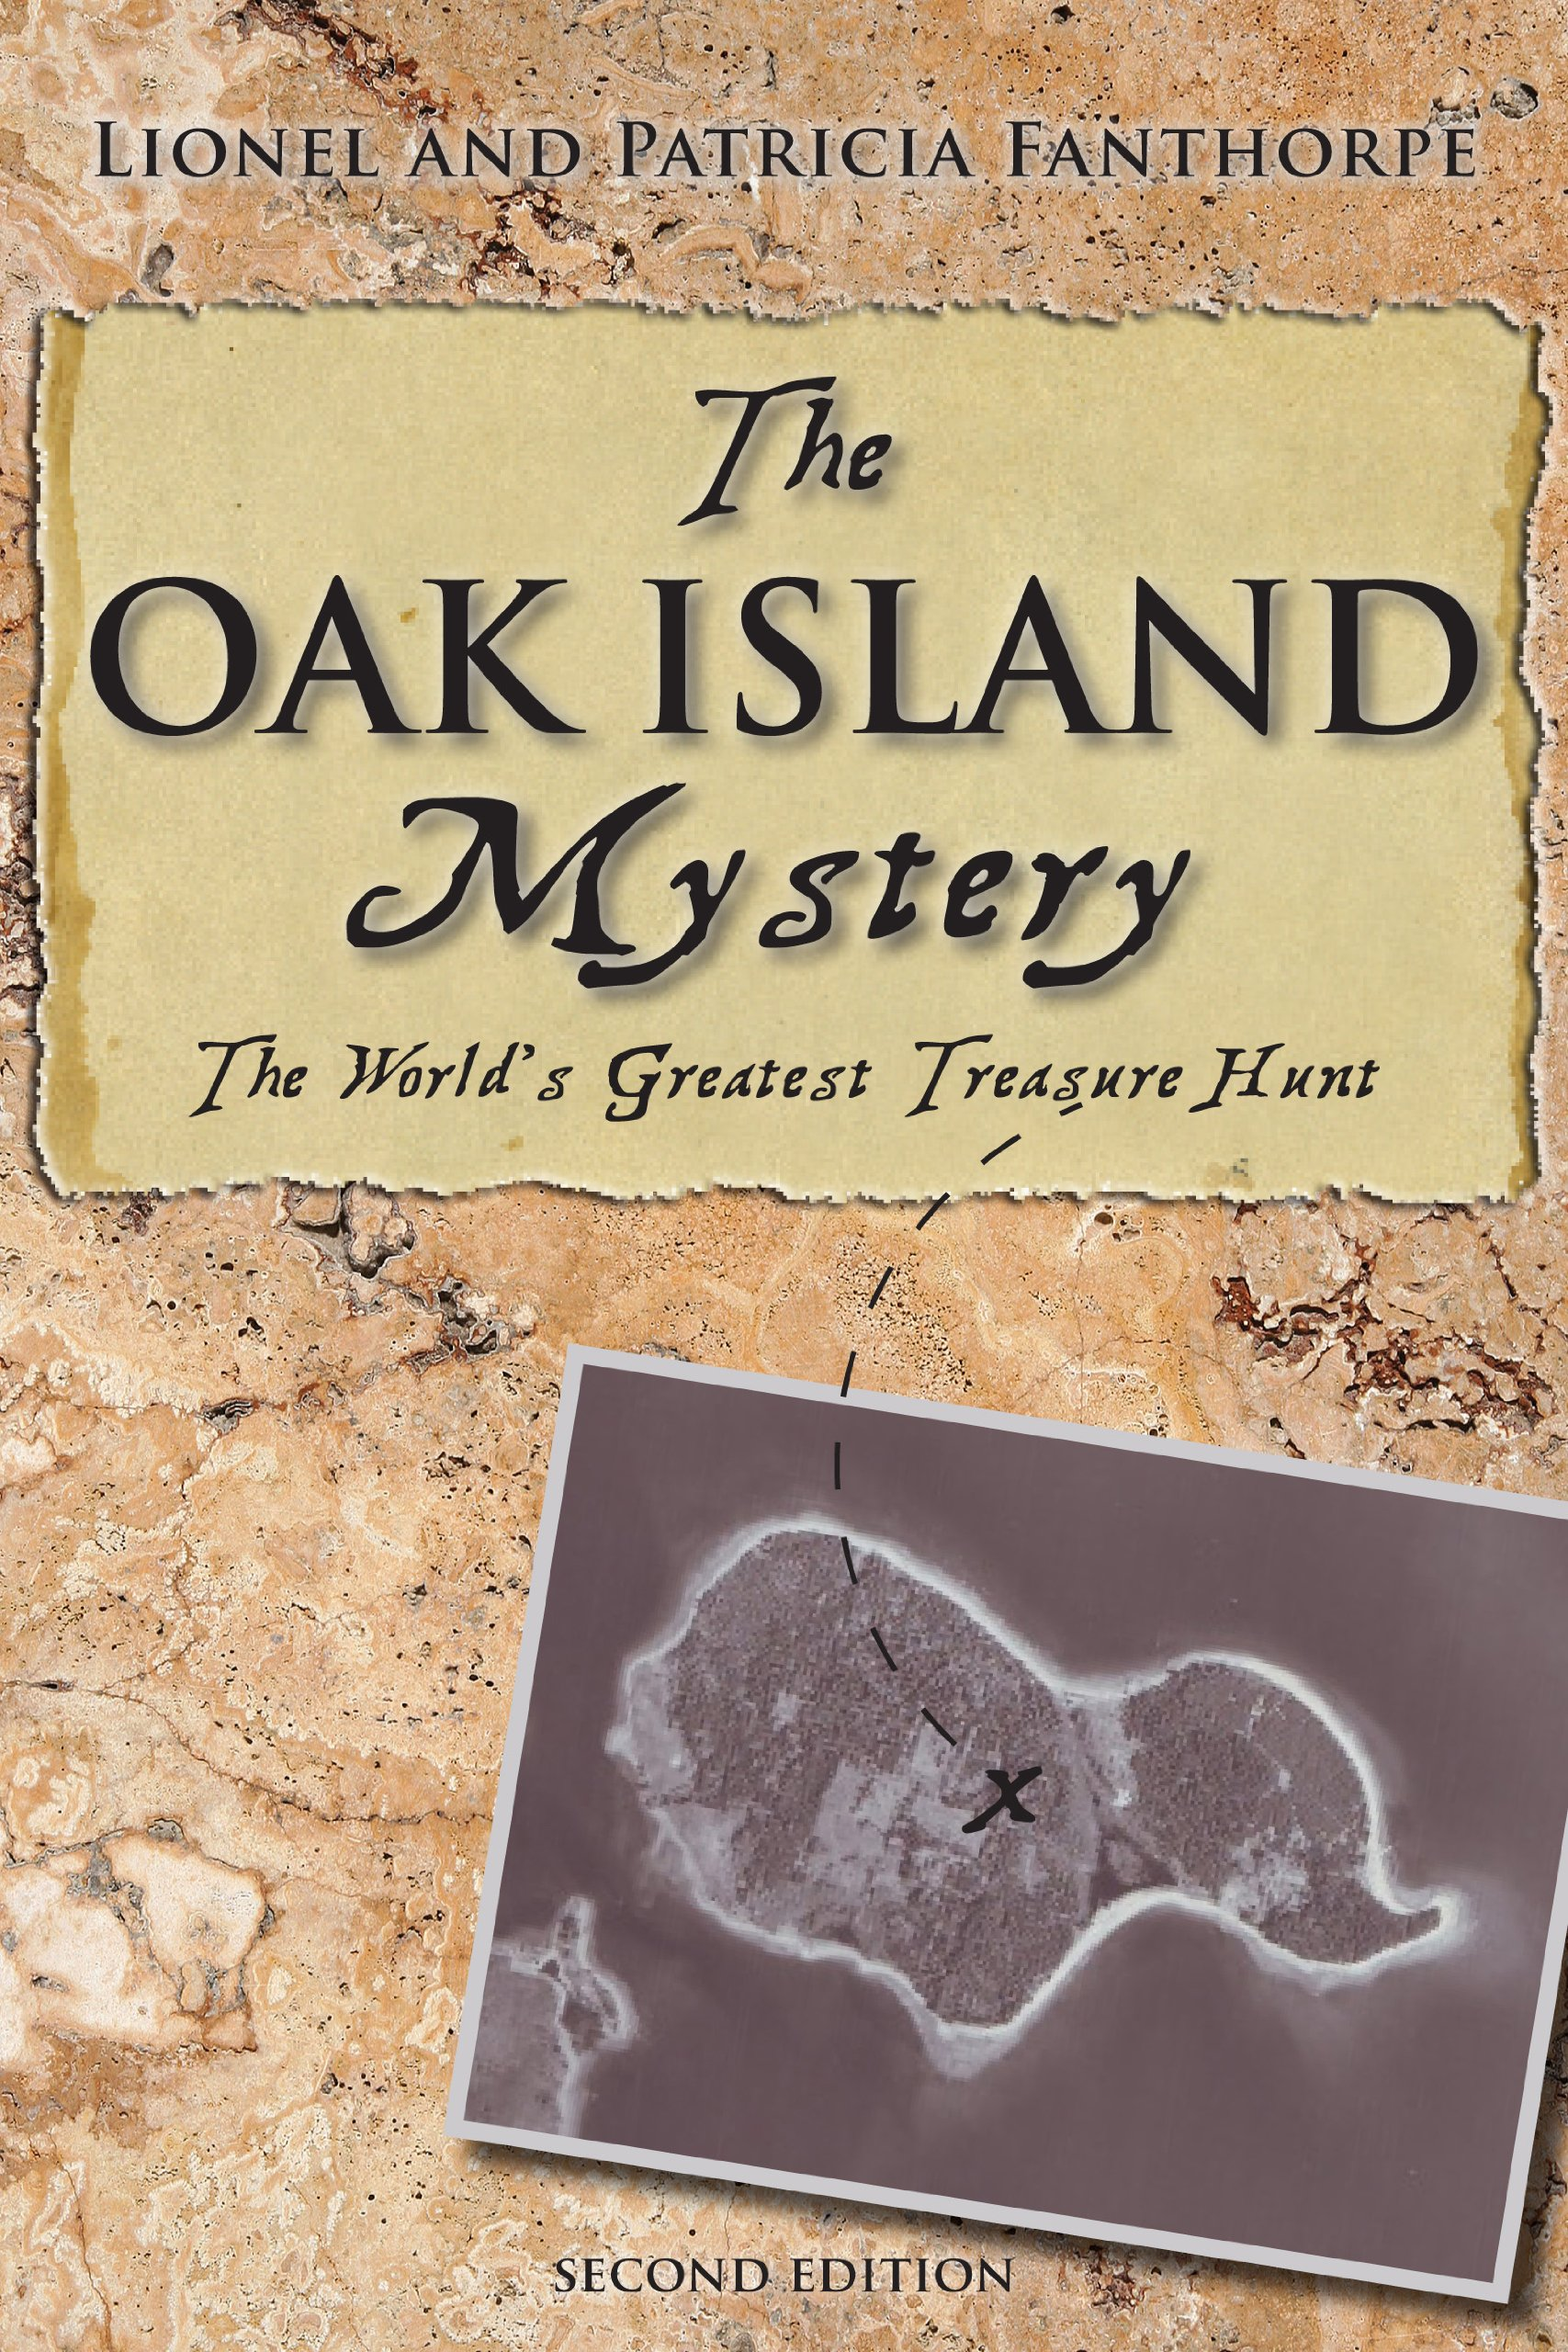 The Oak Island Mystery: The Secret of the World's Greatest Treasure Hunt